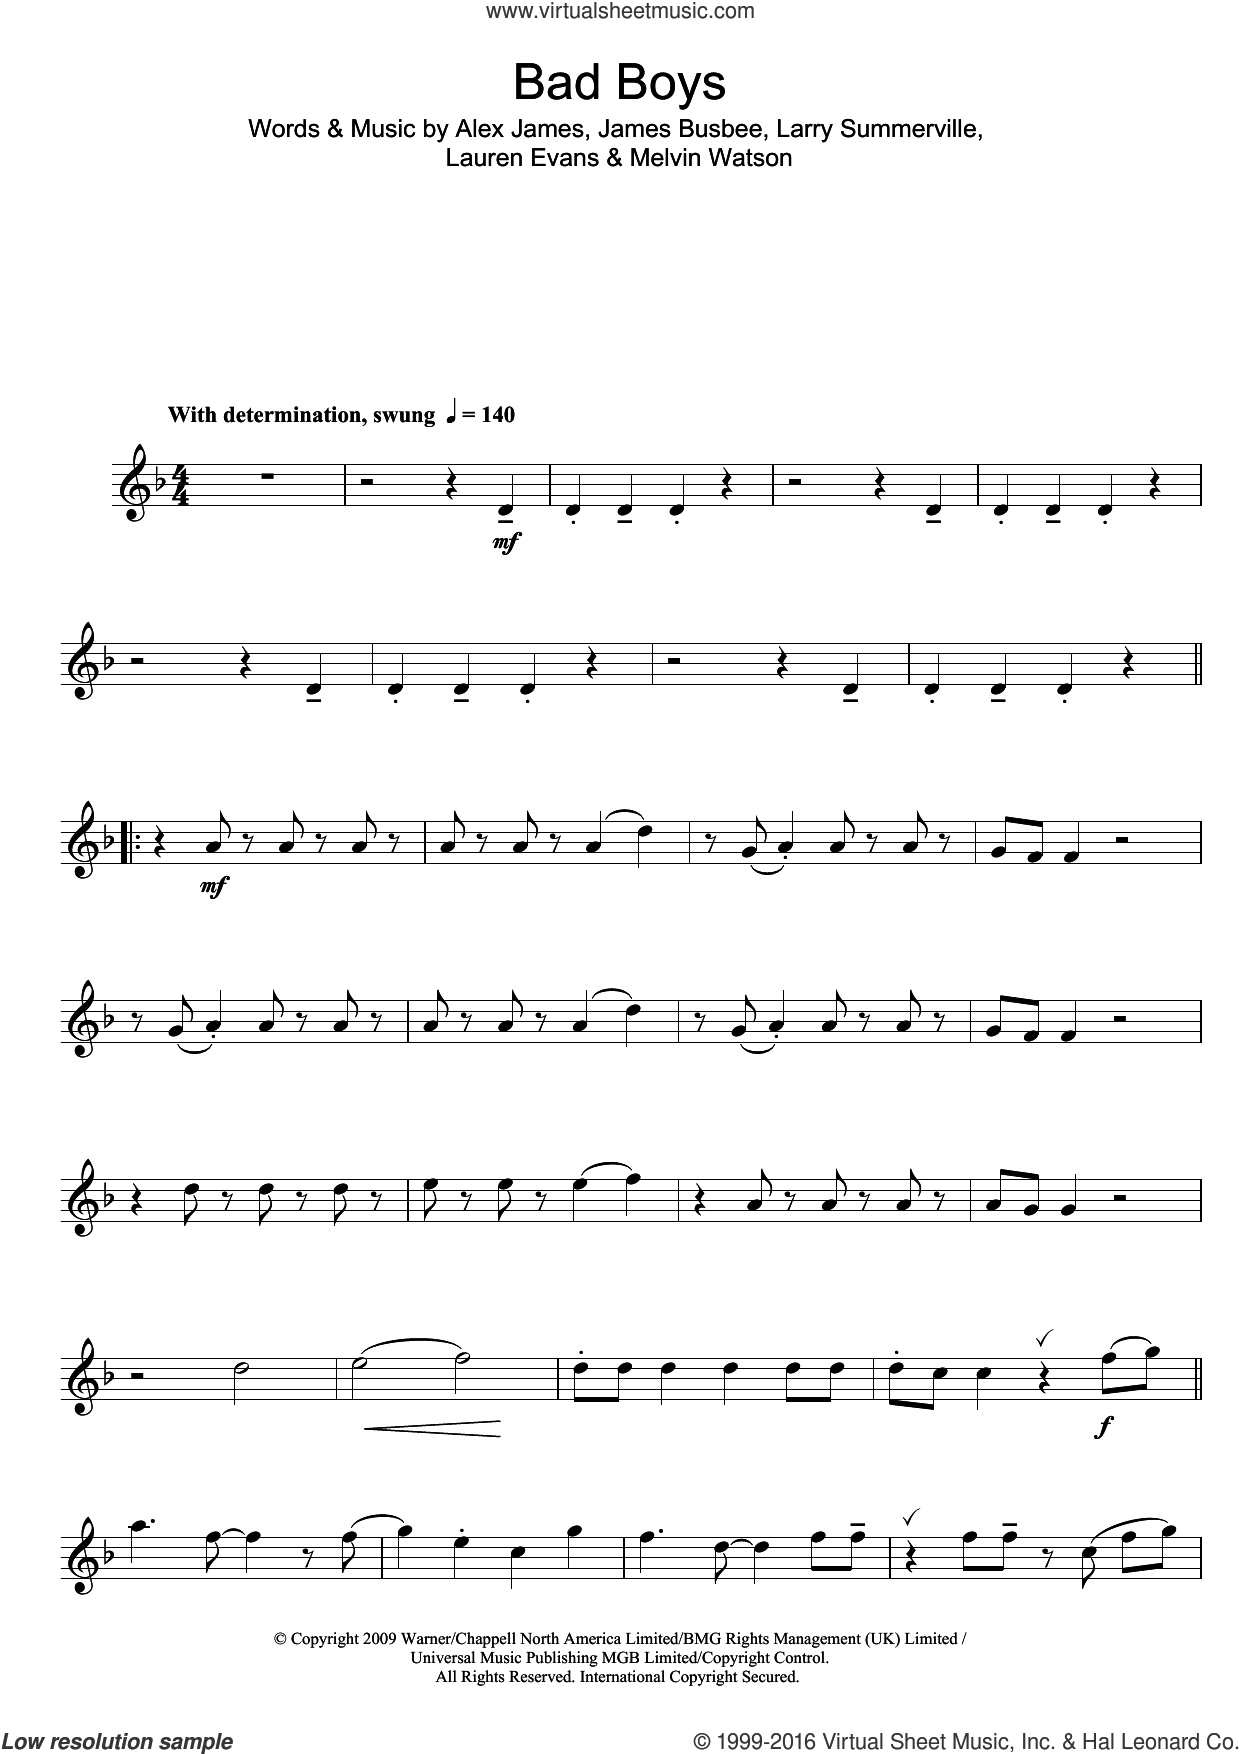 Bad Boys sheet music for alto saxophone solo by Alexandra Burke, Alex James, James Busbee, Larry Summerville, Lauren Evans and Melvin Watson, intermediate skill level